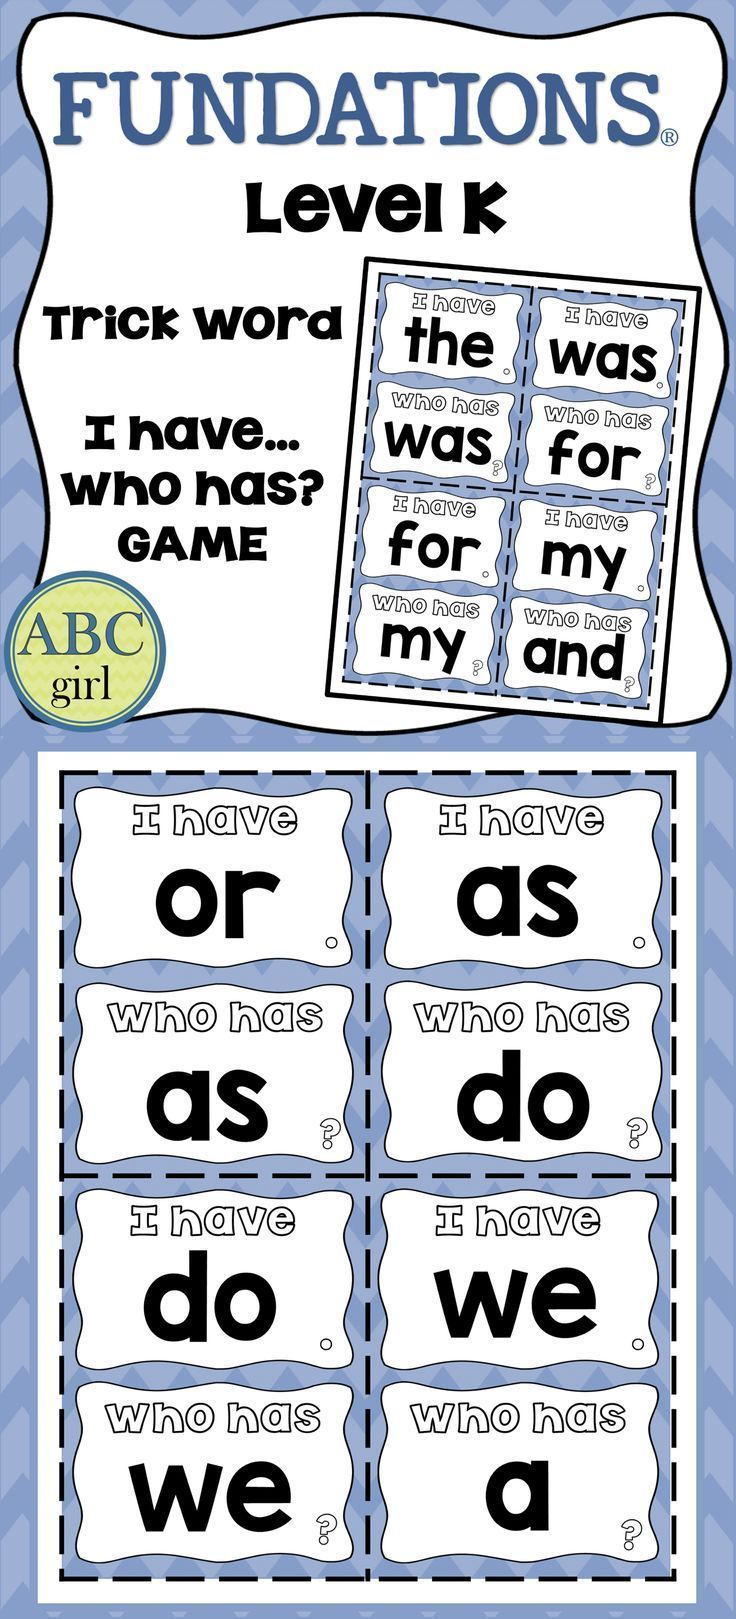 """FUNDATIONS®️️️️️️️ Level K  """"I Have...Who Has?"""" Trick Word Game for all 27 trick words from the Kindergarten Fundations program. Great for reviewing trick words in class or to send home for fun family practice! Color and black and white versions are included."""